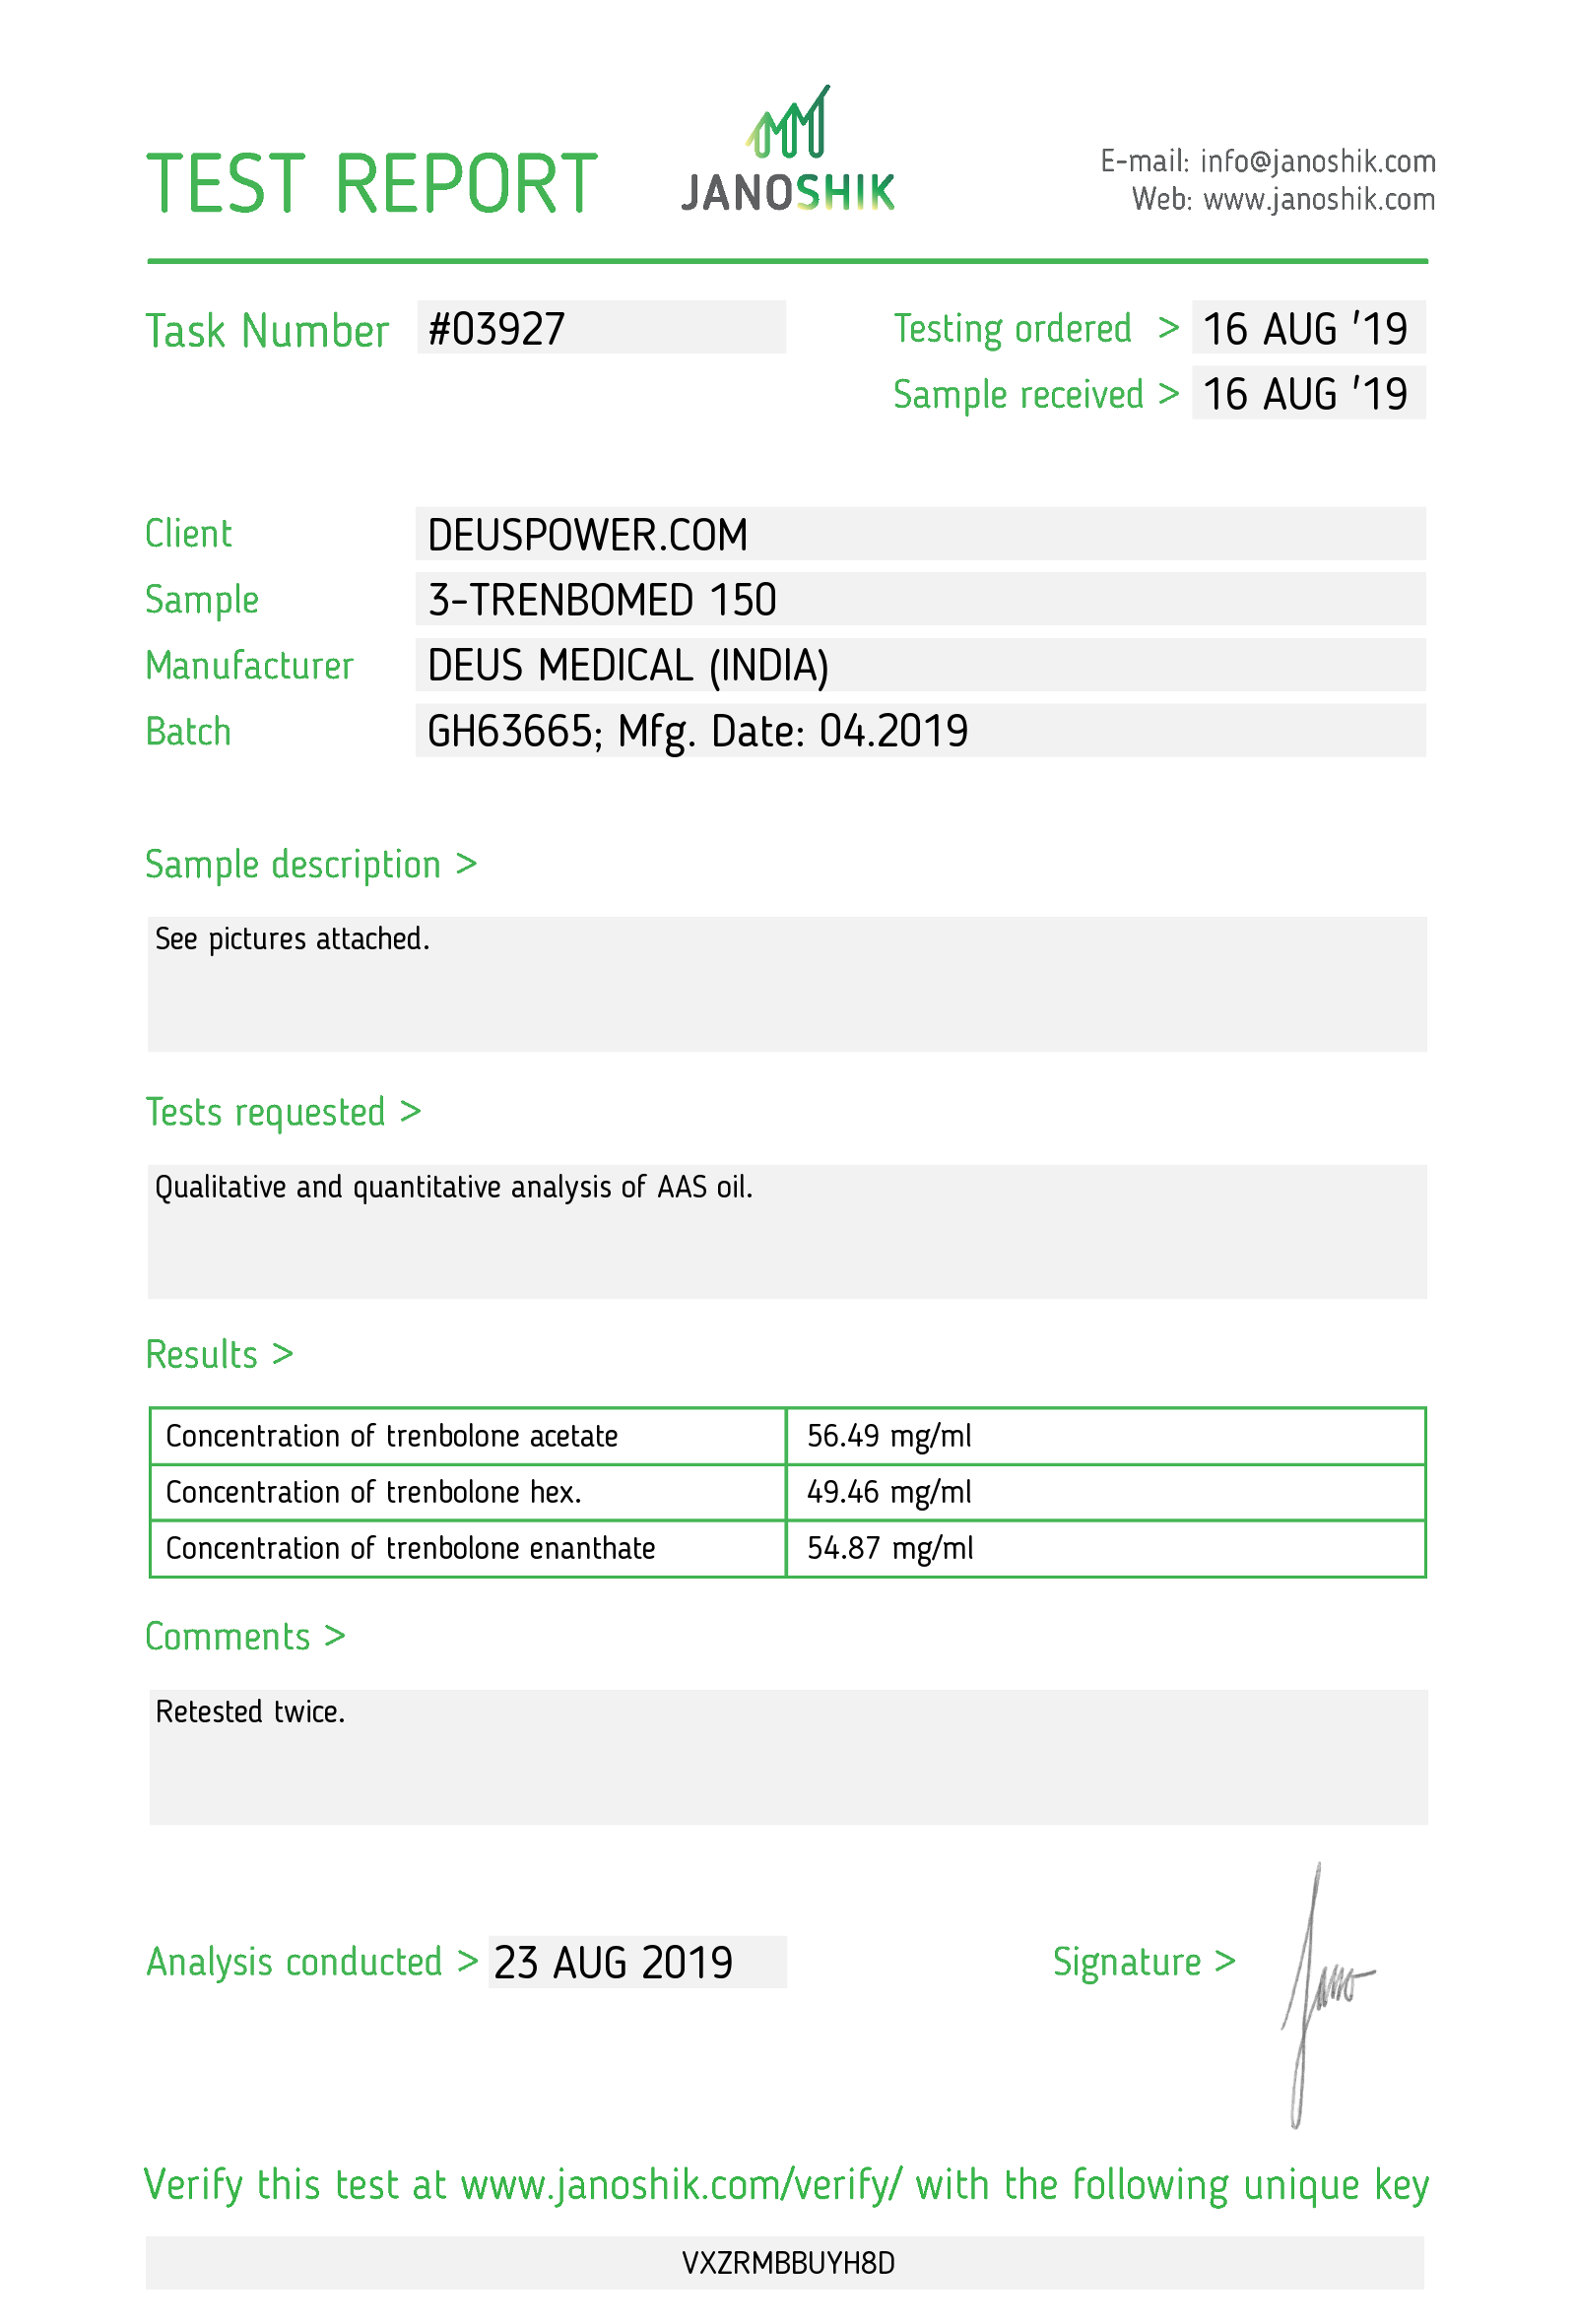 Laboratory Test for Deus Medical 3-TRENBOMED 150_Test Report.png